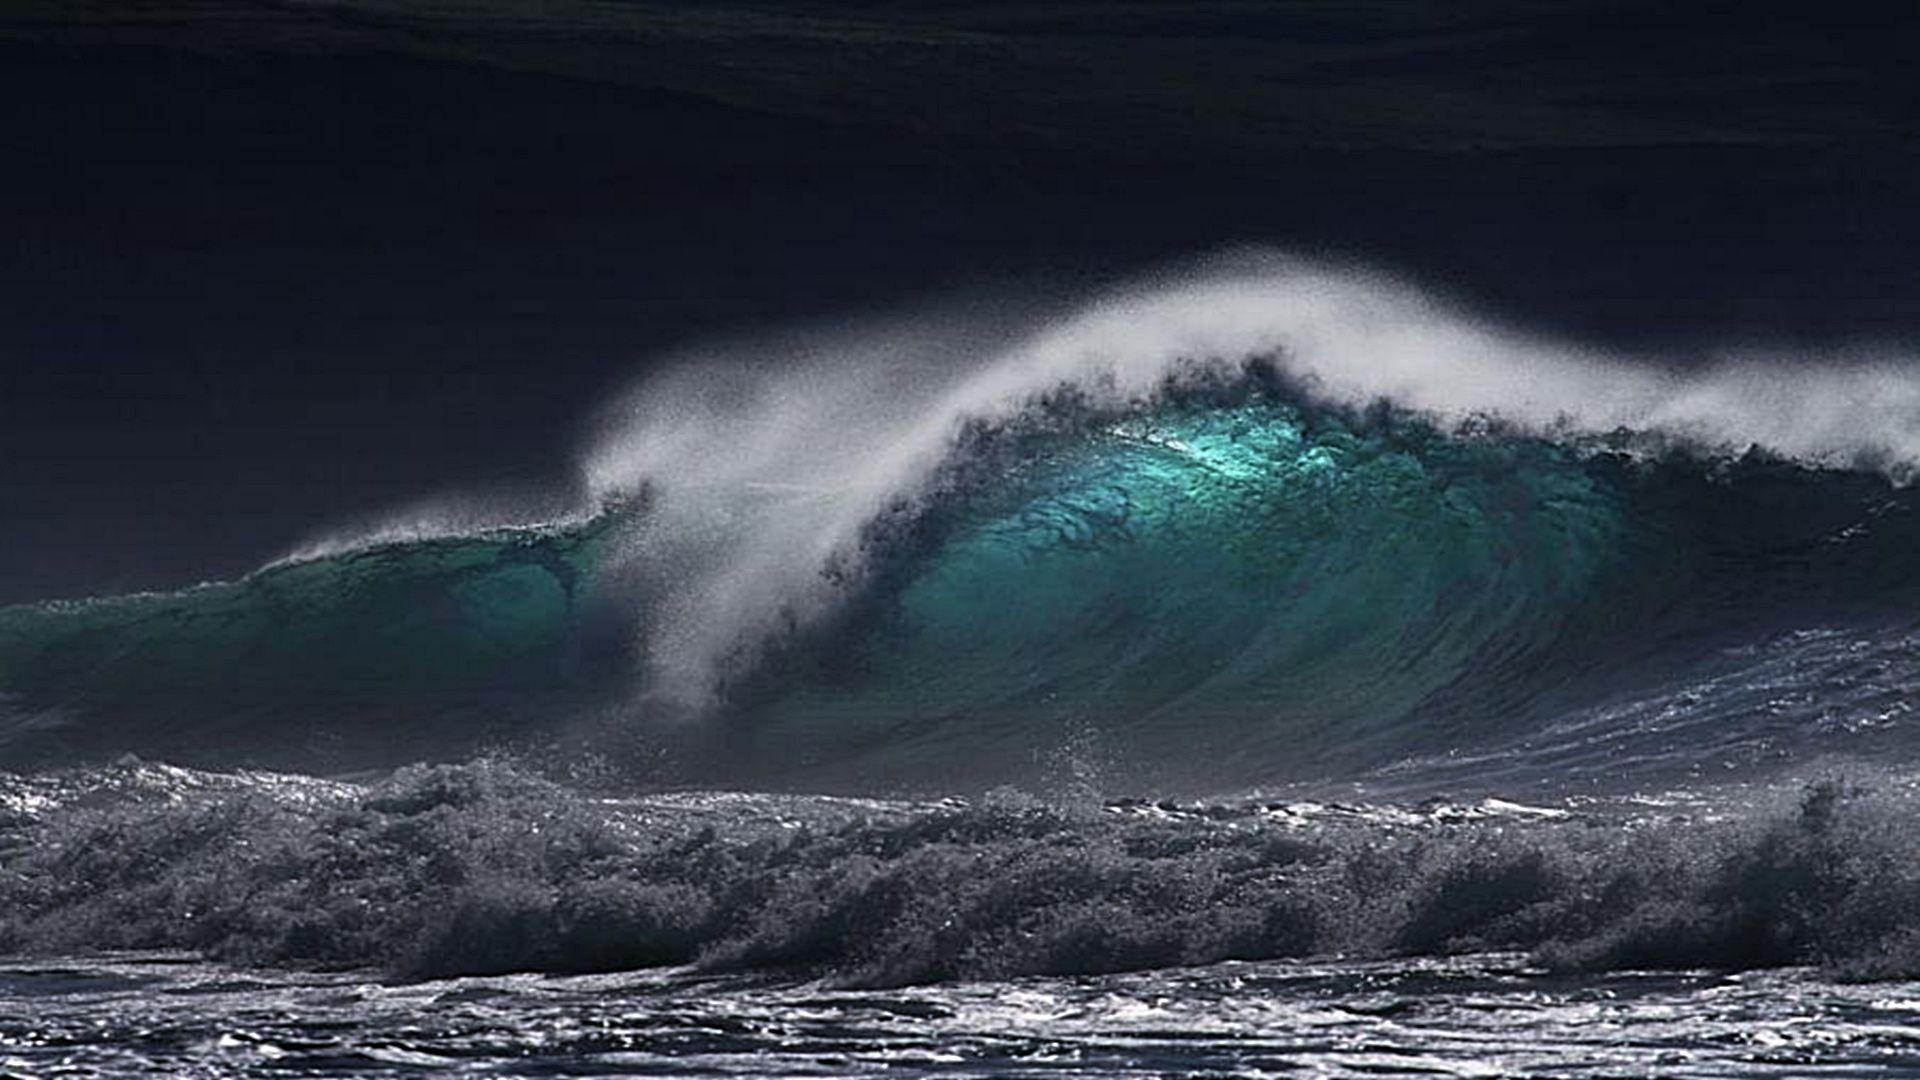 Image For > Stormy Sea Wave